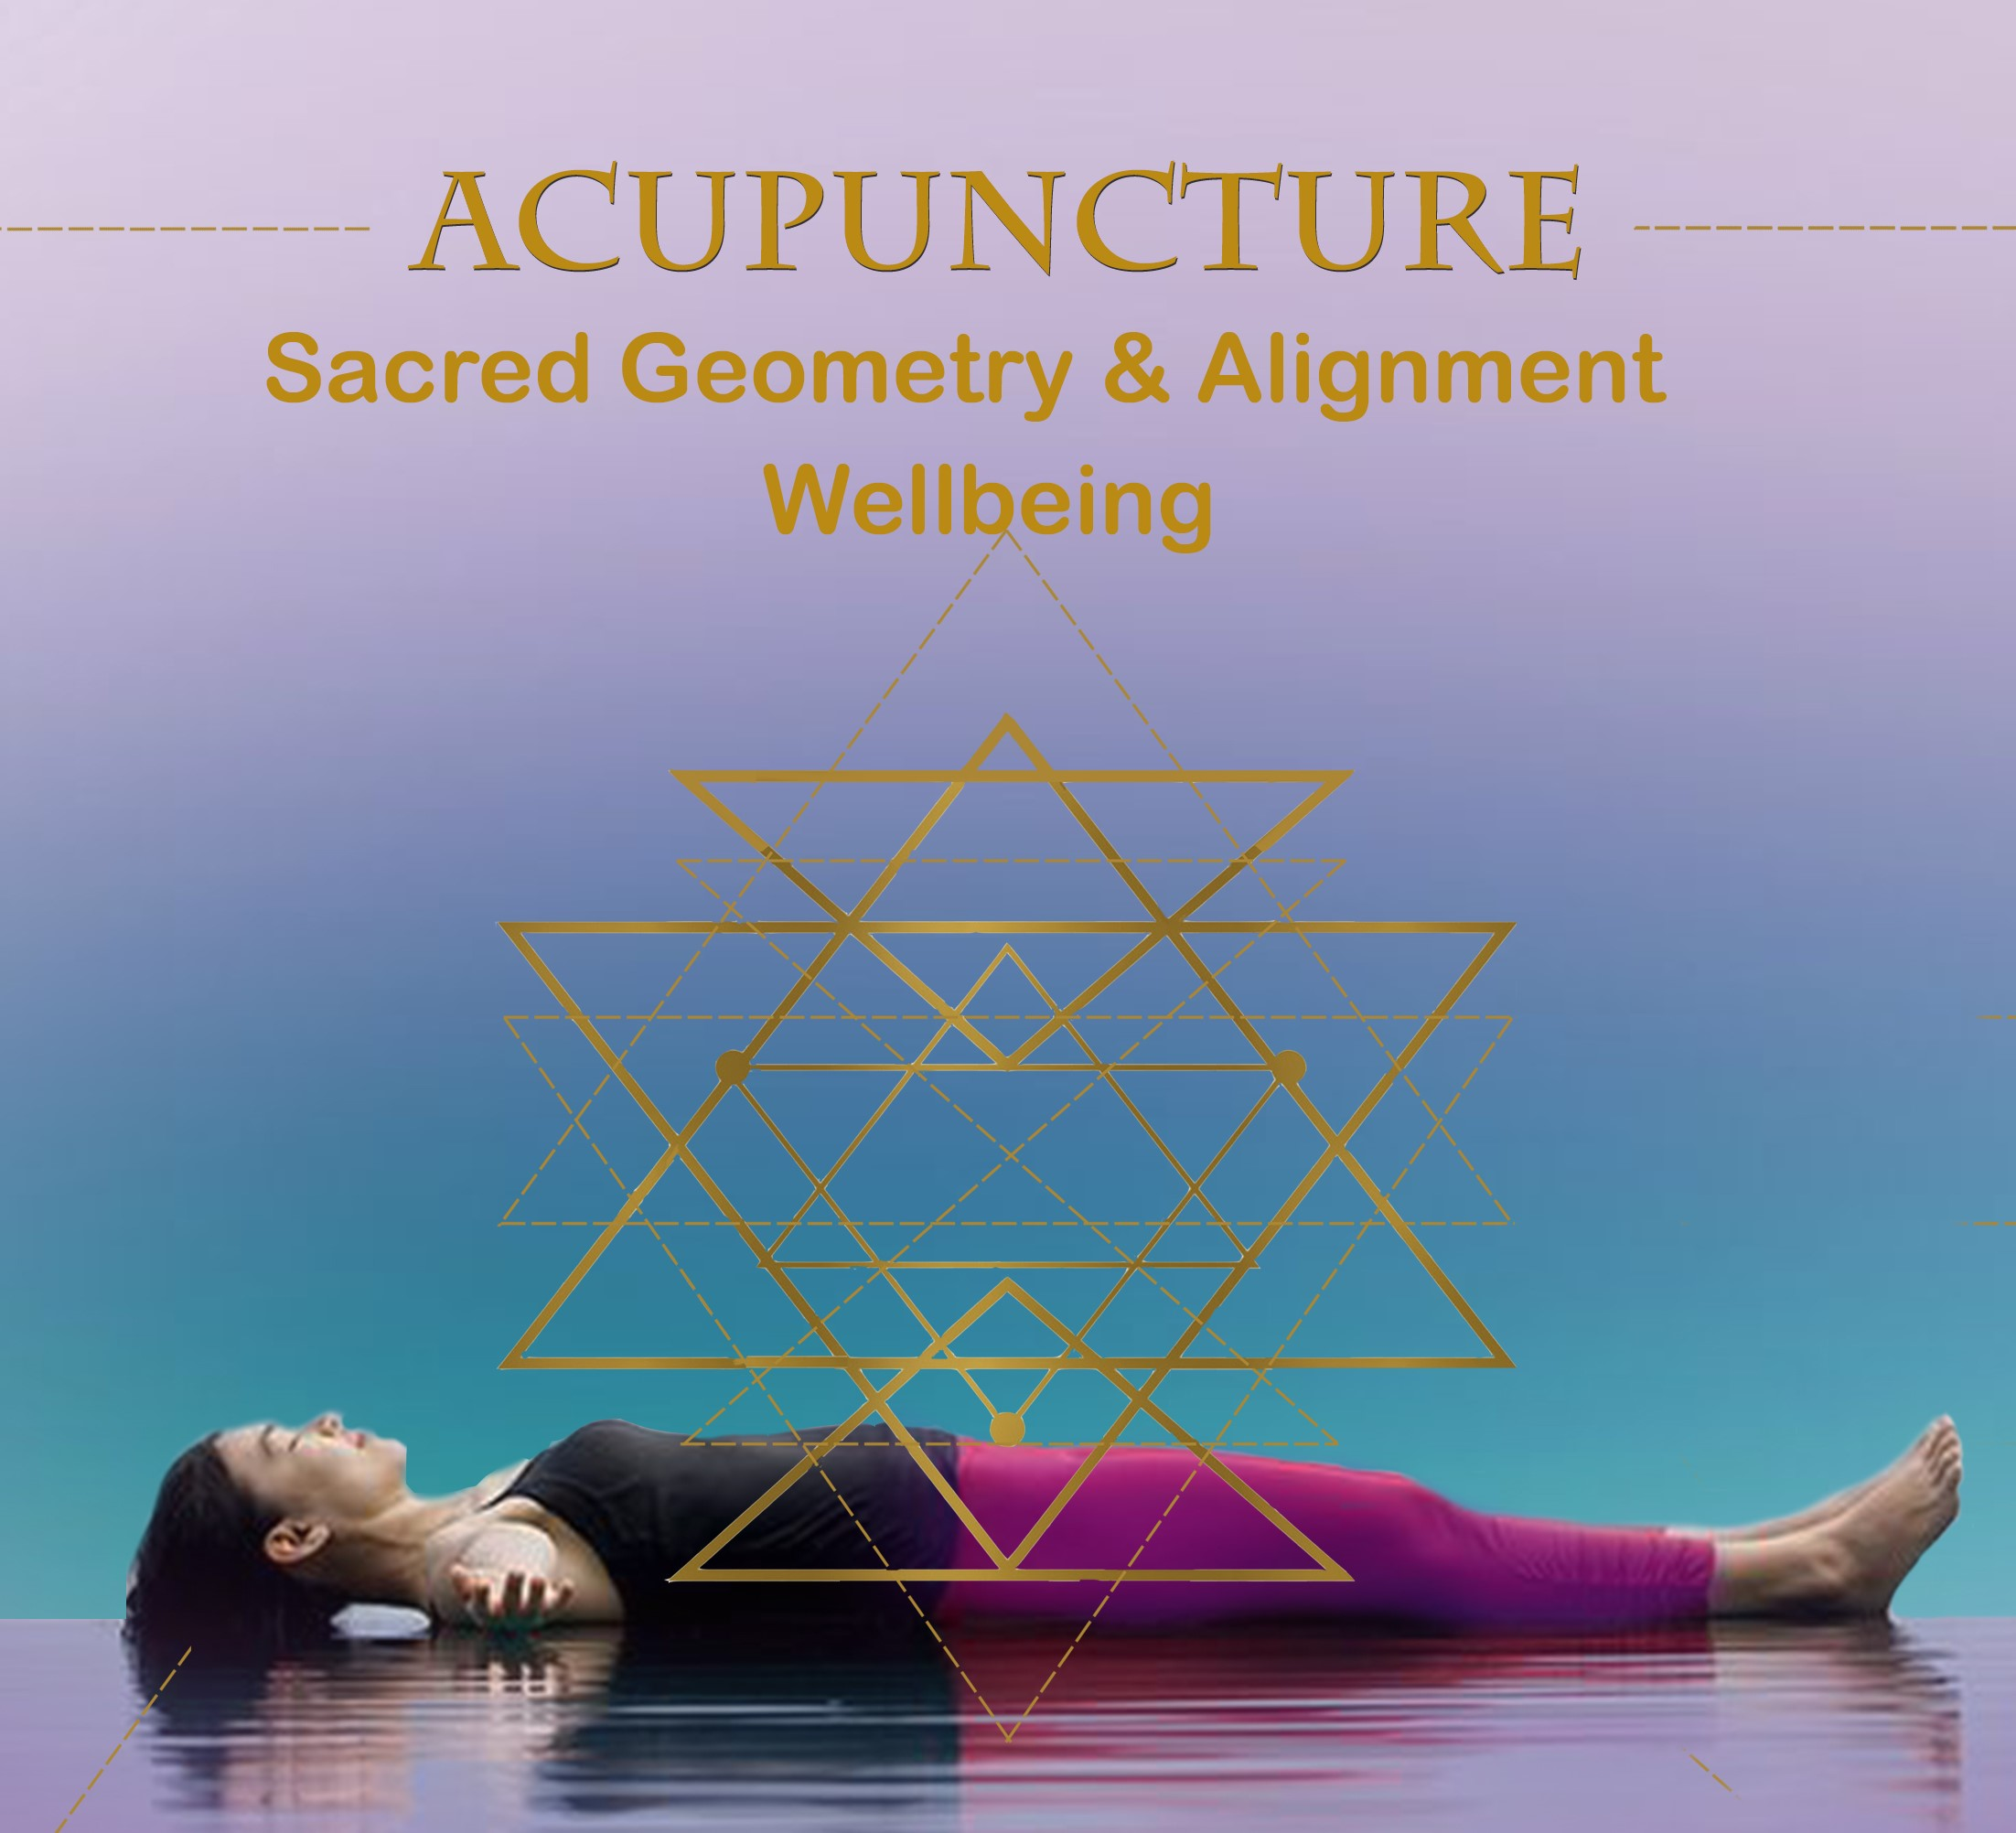 Esoteric Acupuncture builds Sacred Geometry the many layers of your energy field.